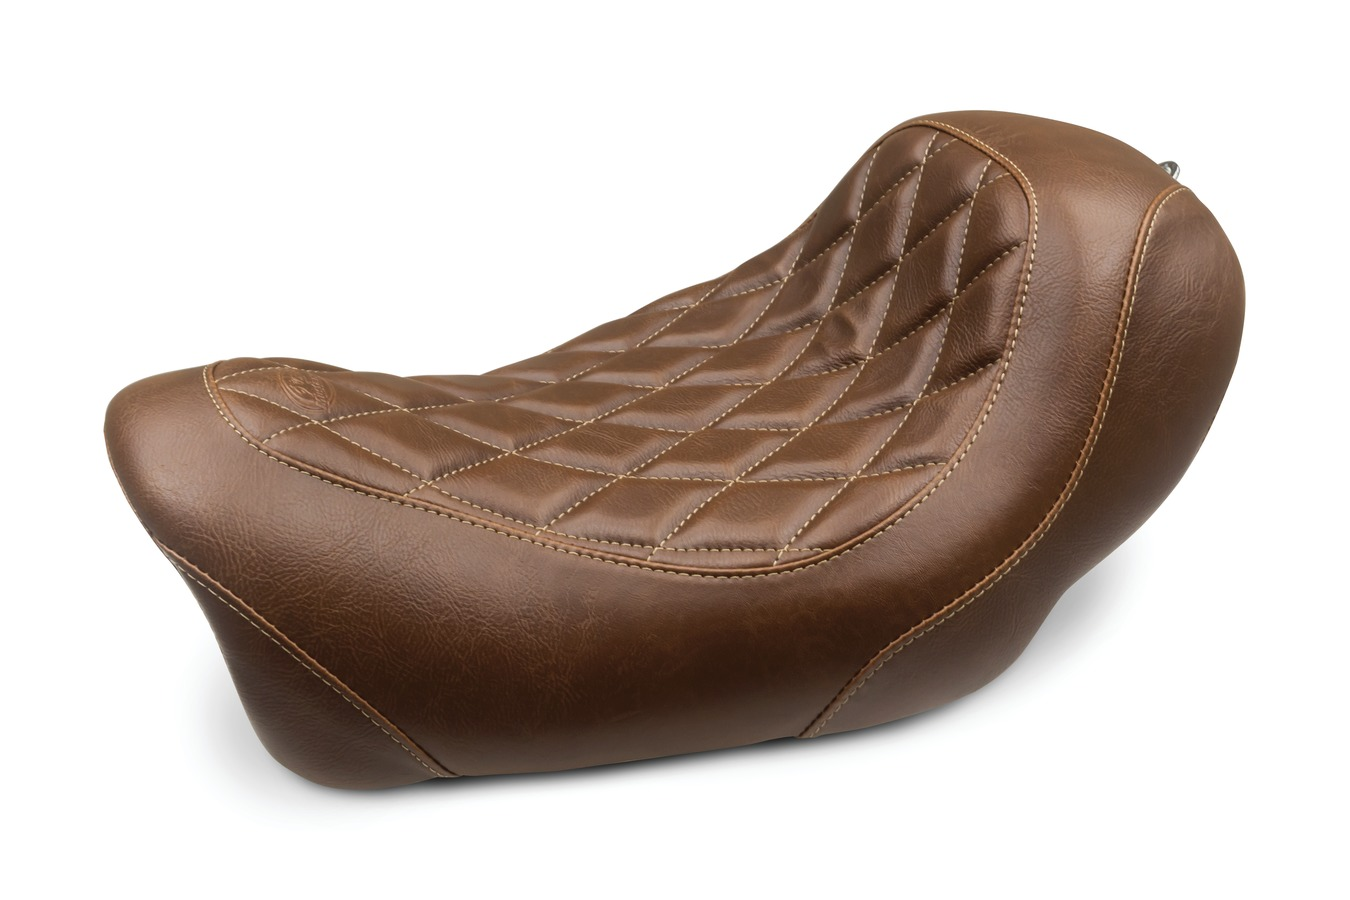 Wide Tripper™ Solo Seat, Diamond, Brown